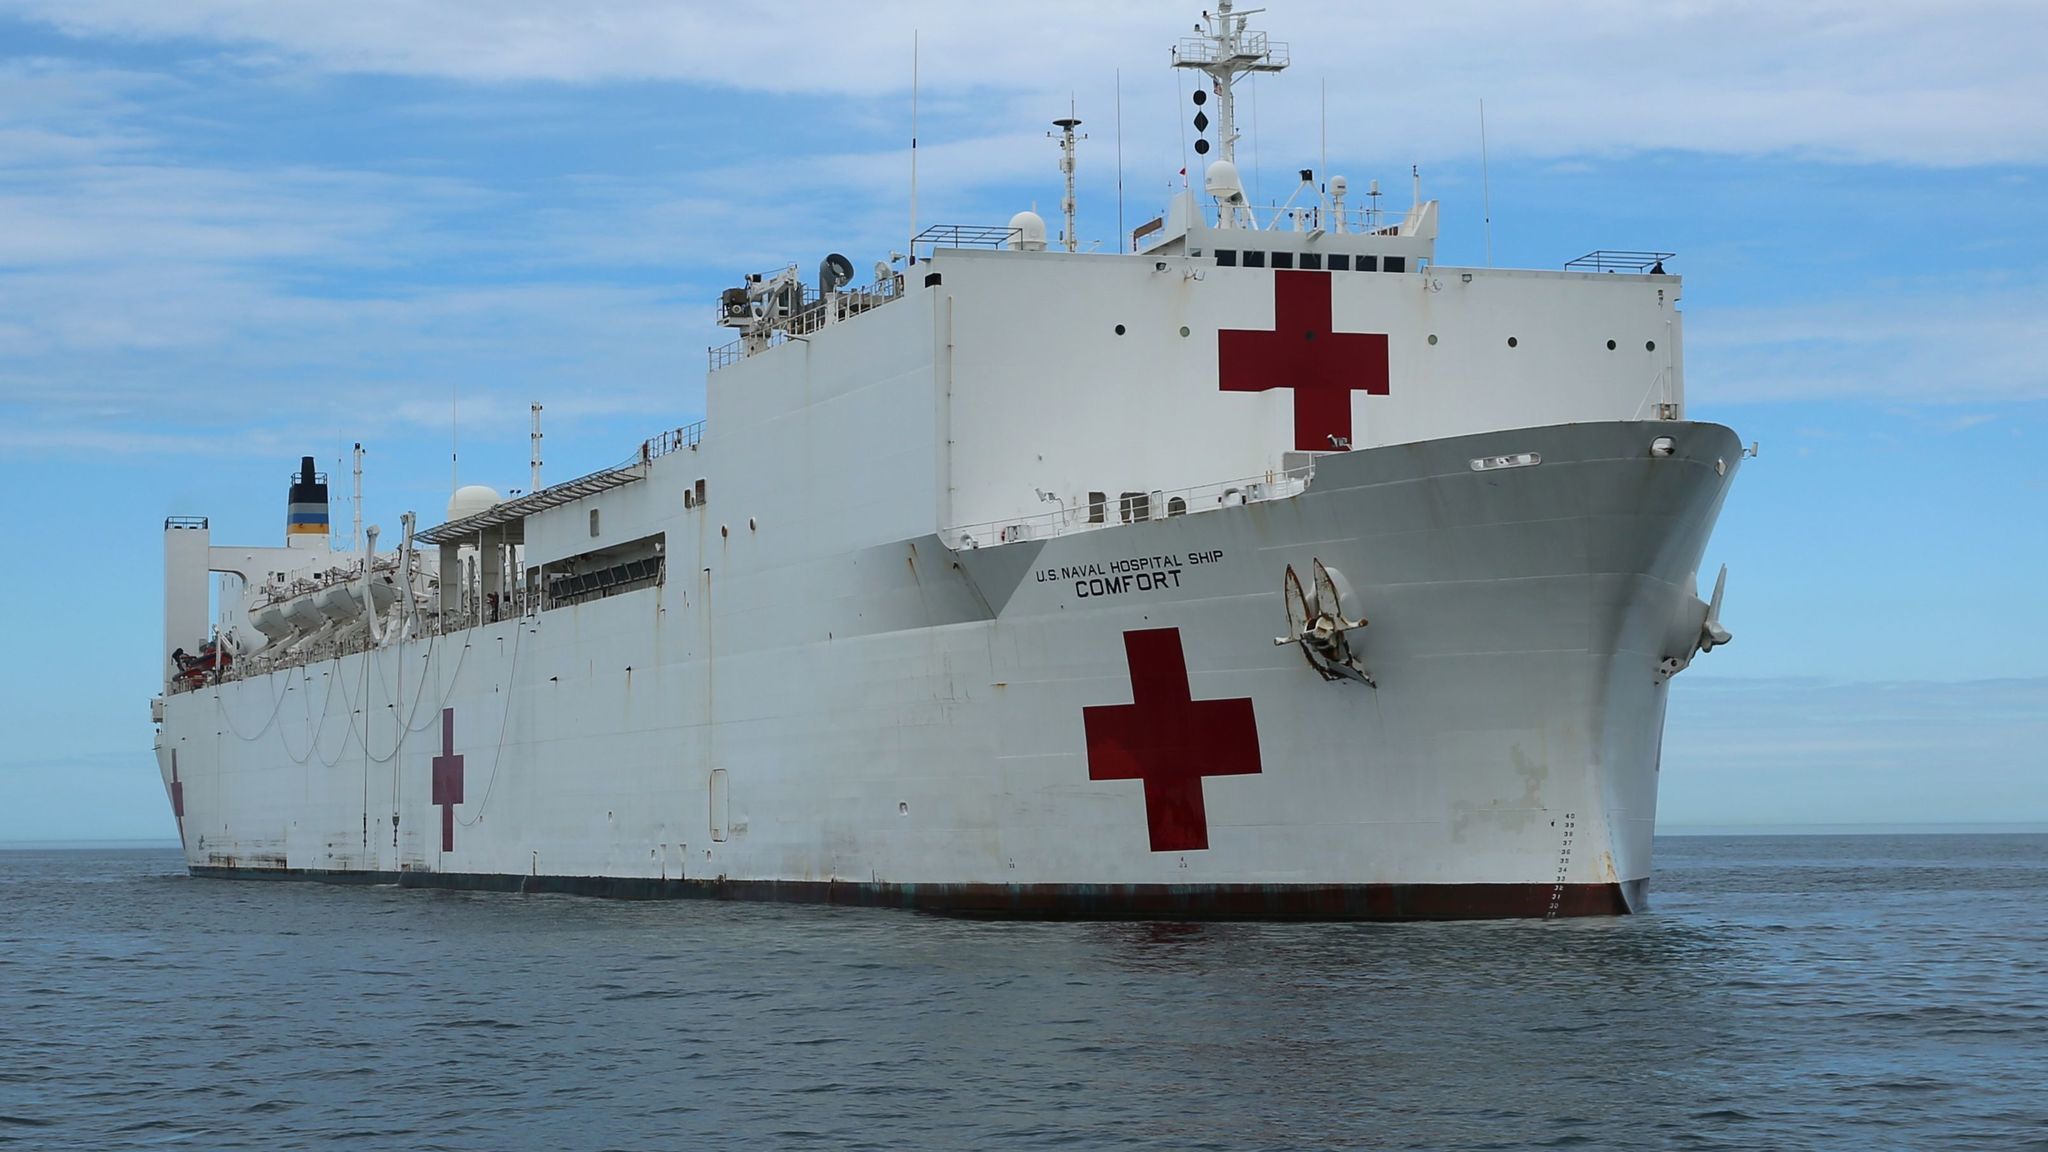 Hospital ship comfort heads to puerto rico daily press stopboris Image collections